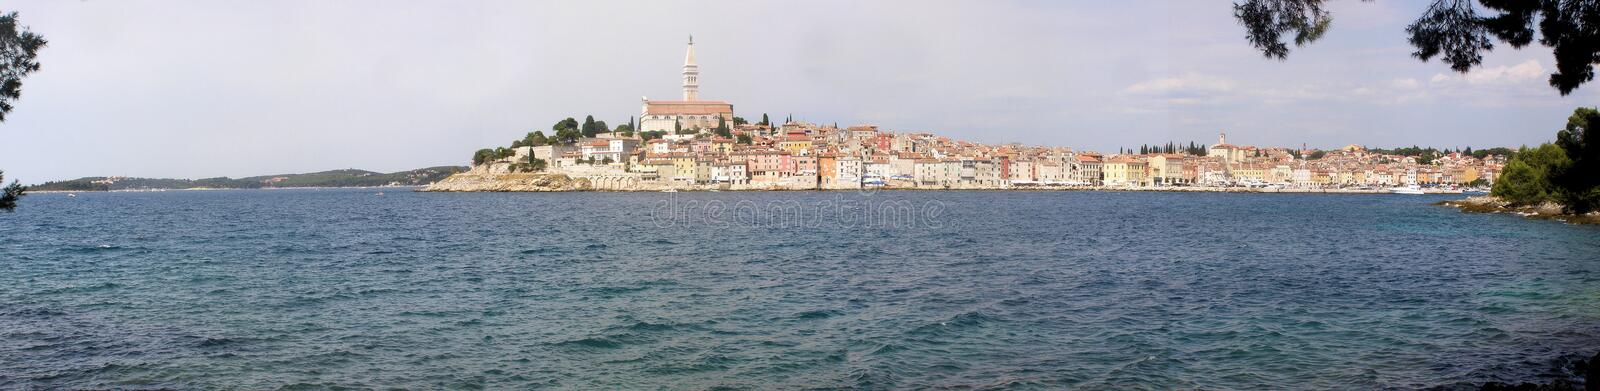 Rovinj - Croatia panorama royalty free stock images